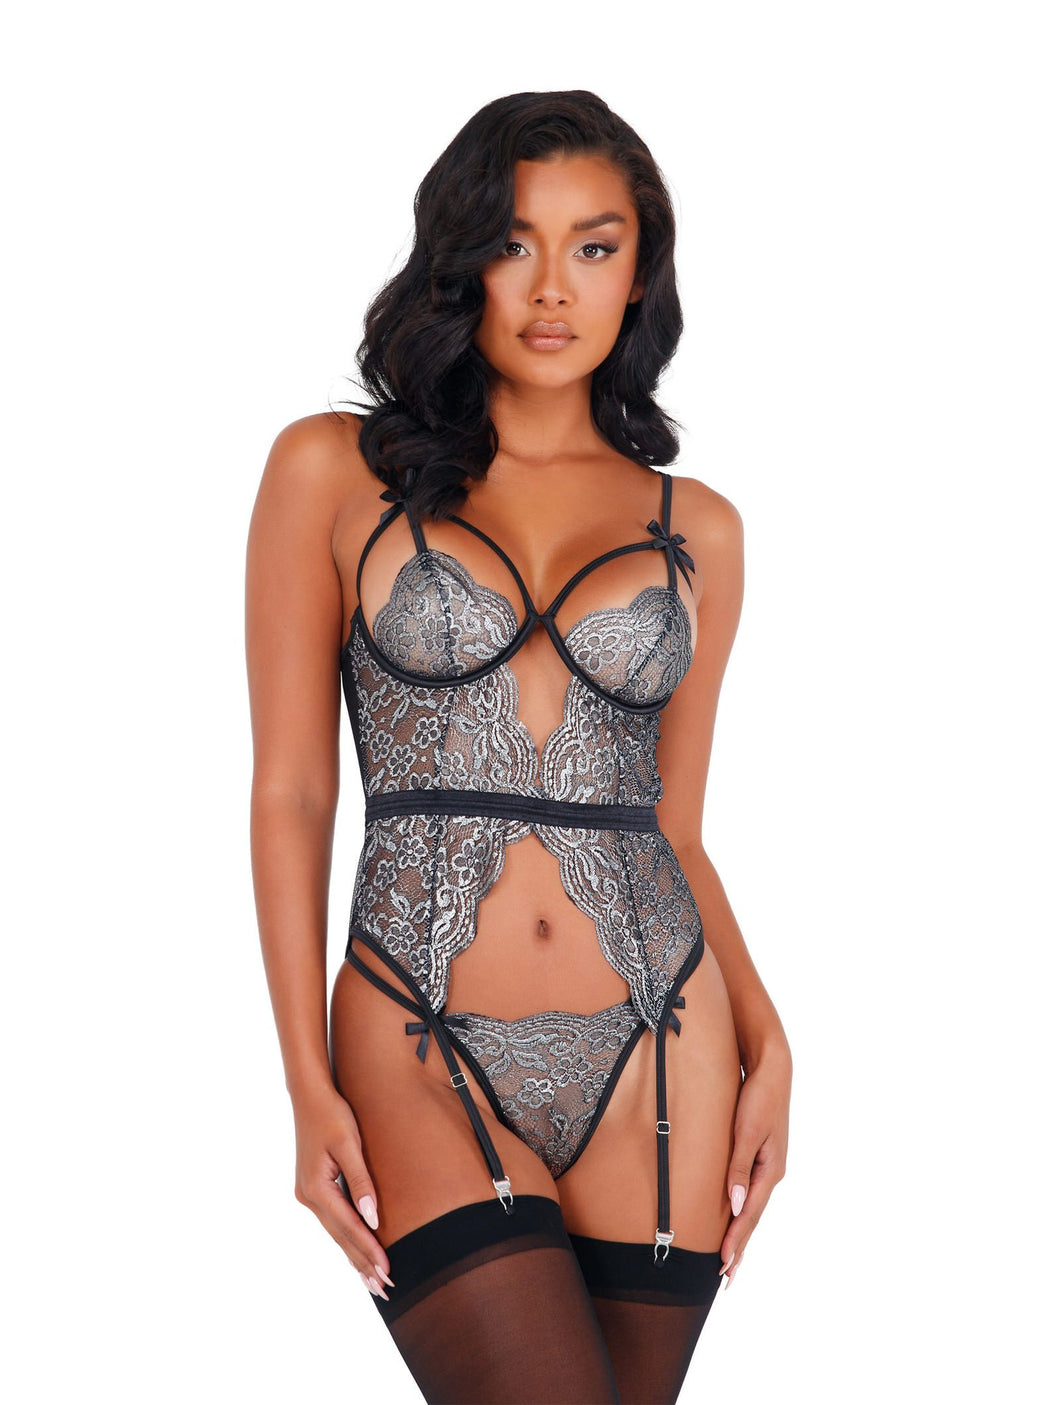 Silver Metallic Bustier Set